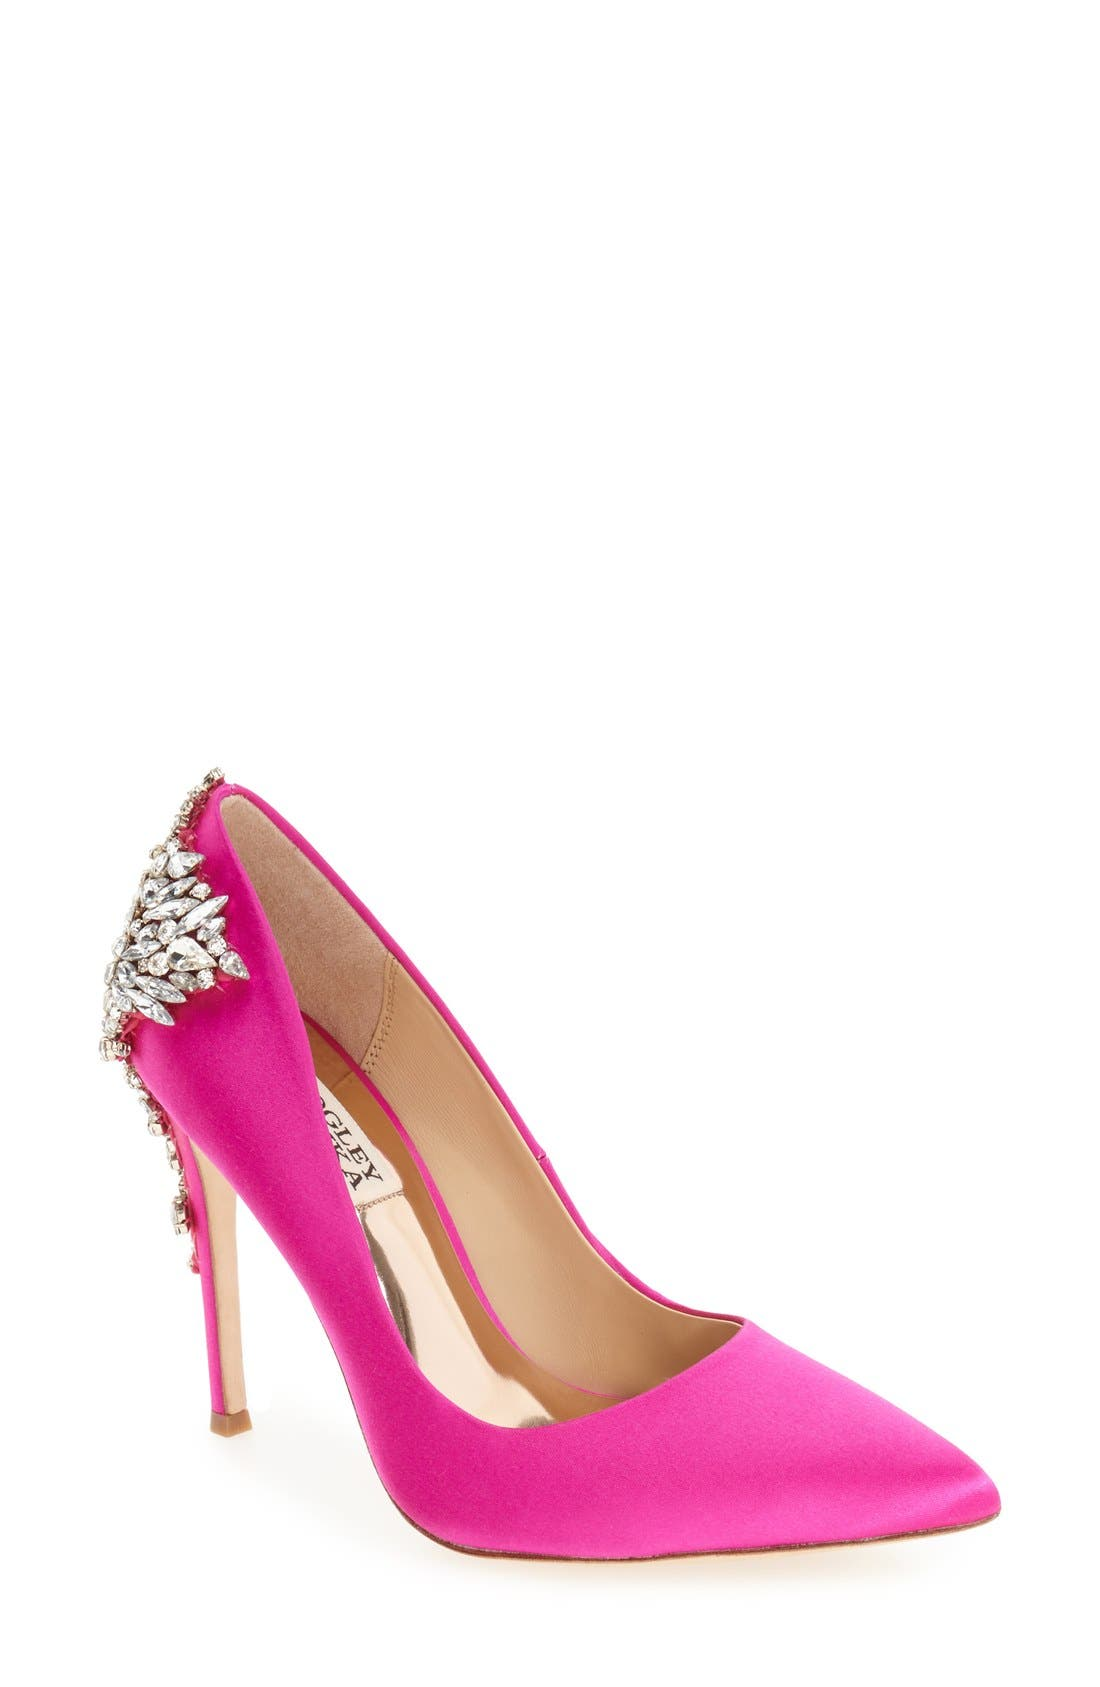 BADGLEY MISCHKA 'Gorgeous' Crystal Embellished Pointy Toe Pump